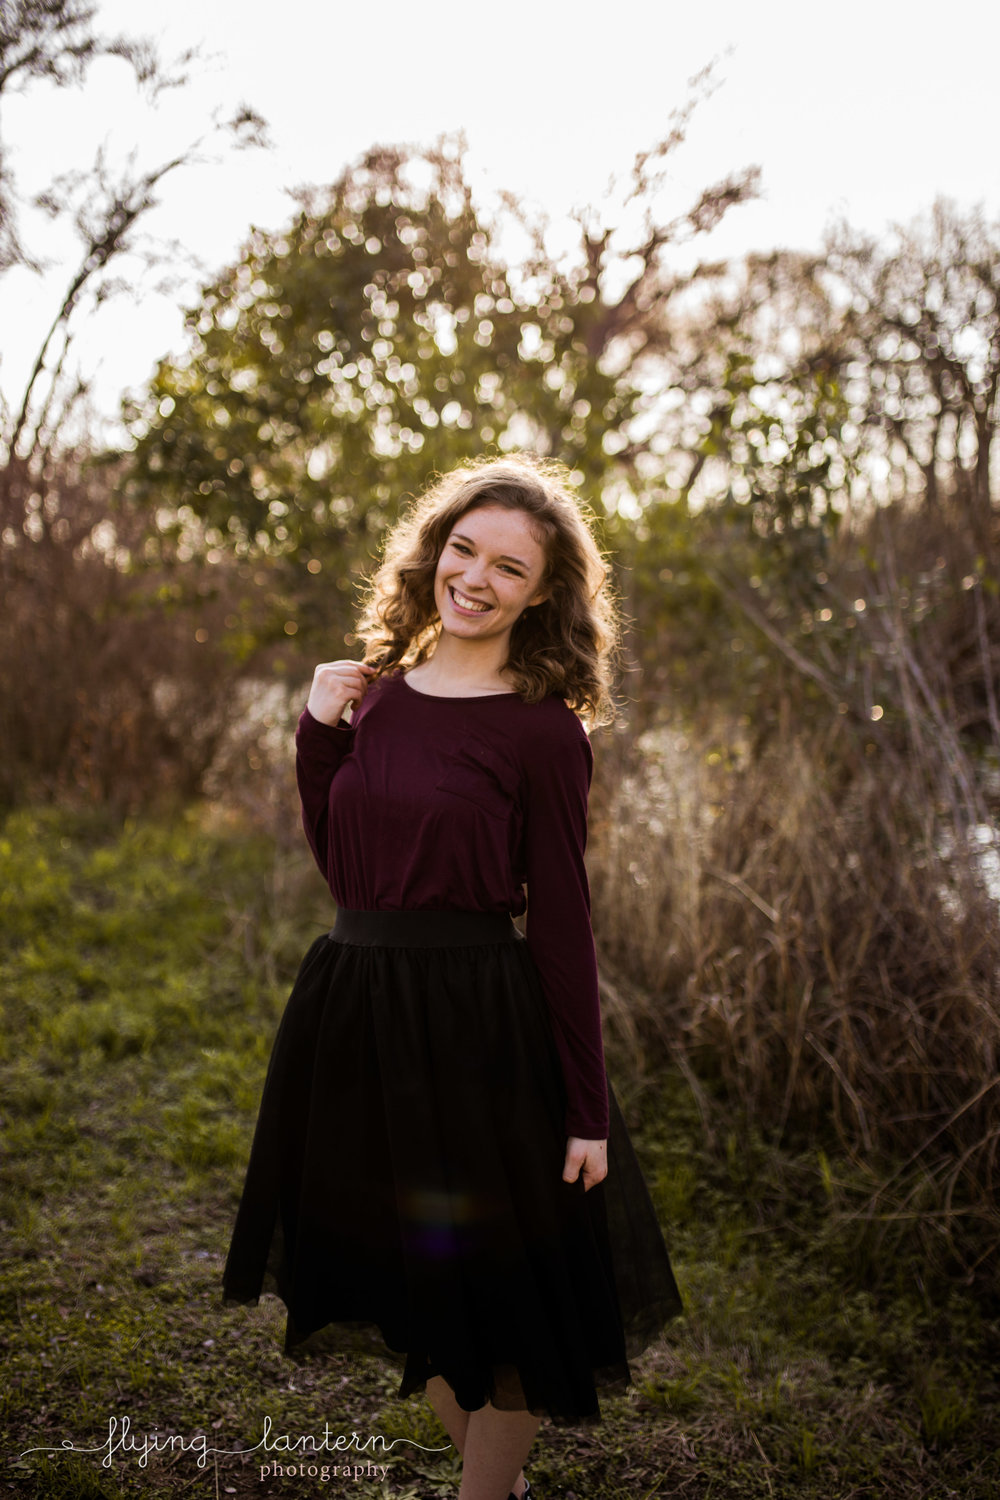 Girl senior portrait at mckinney falls state park wearing black tulle skirt and maroon top by Erin Reas of flying lantern photography